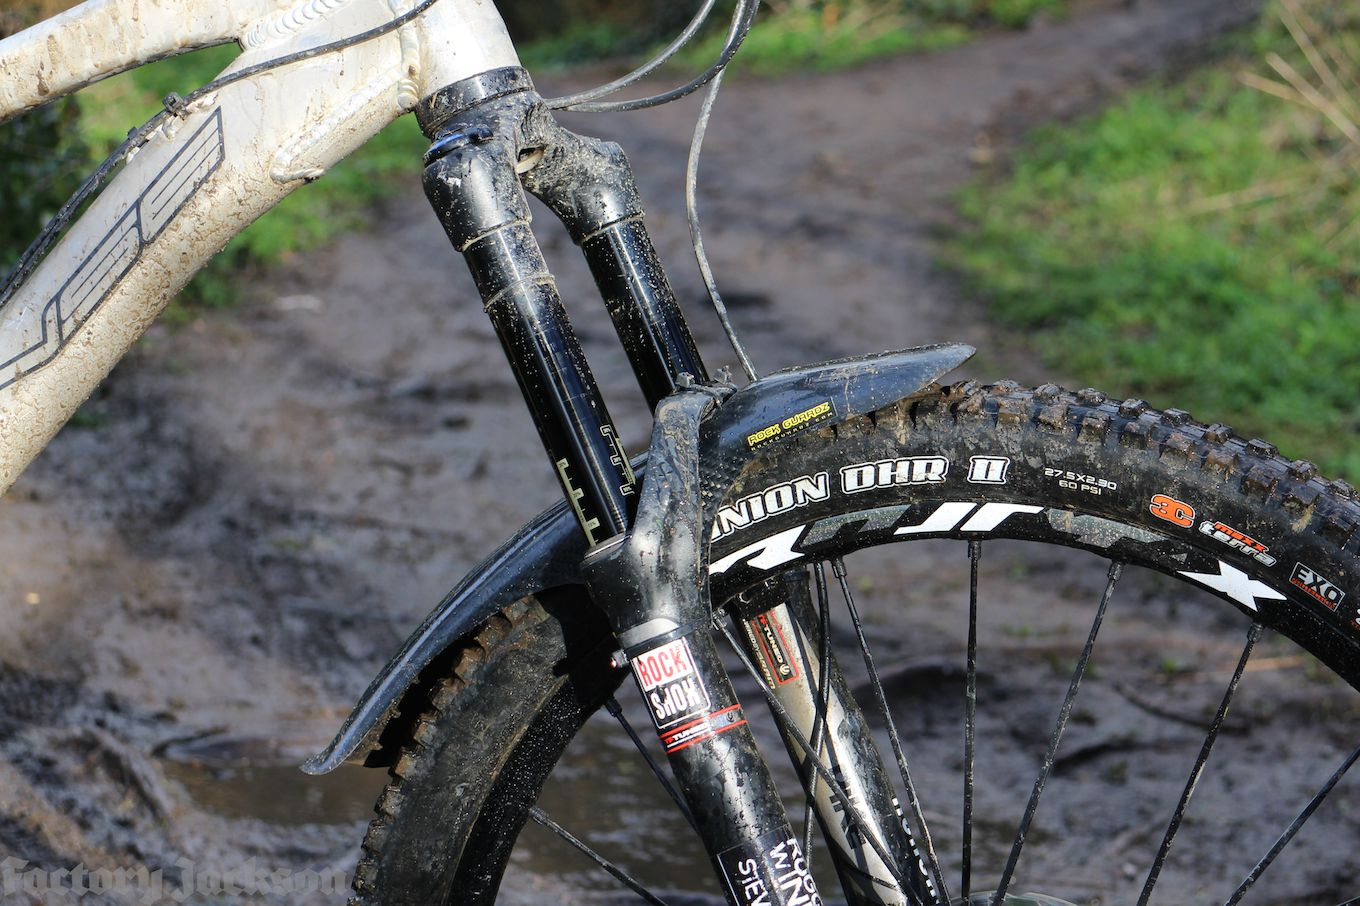 Mtb Mudguards Three Of The Best Factory Jackson Factory Jackson